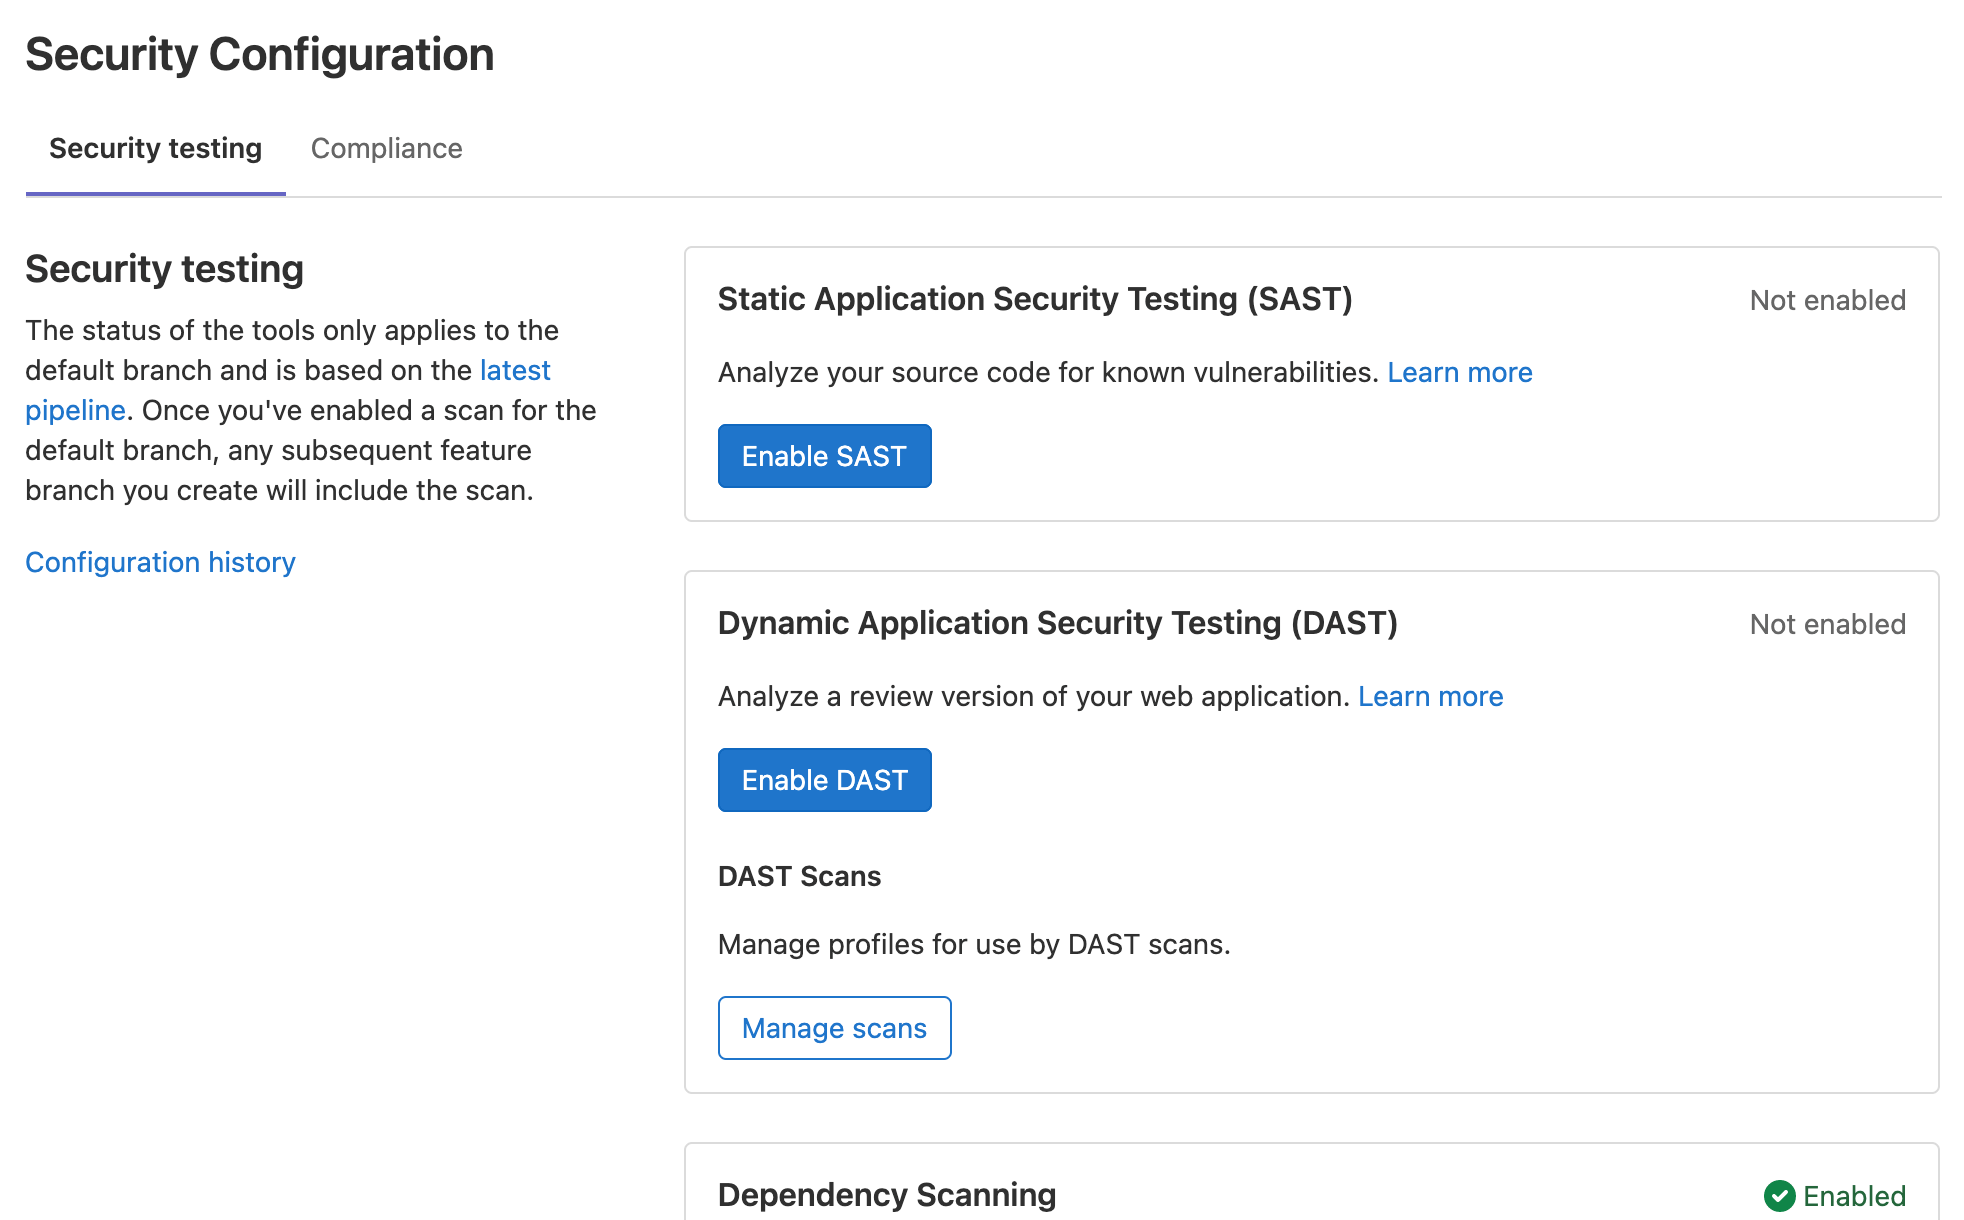 Improved usability of Security & Compliance Configuration page